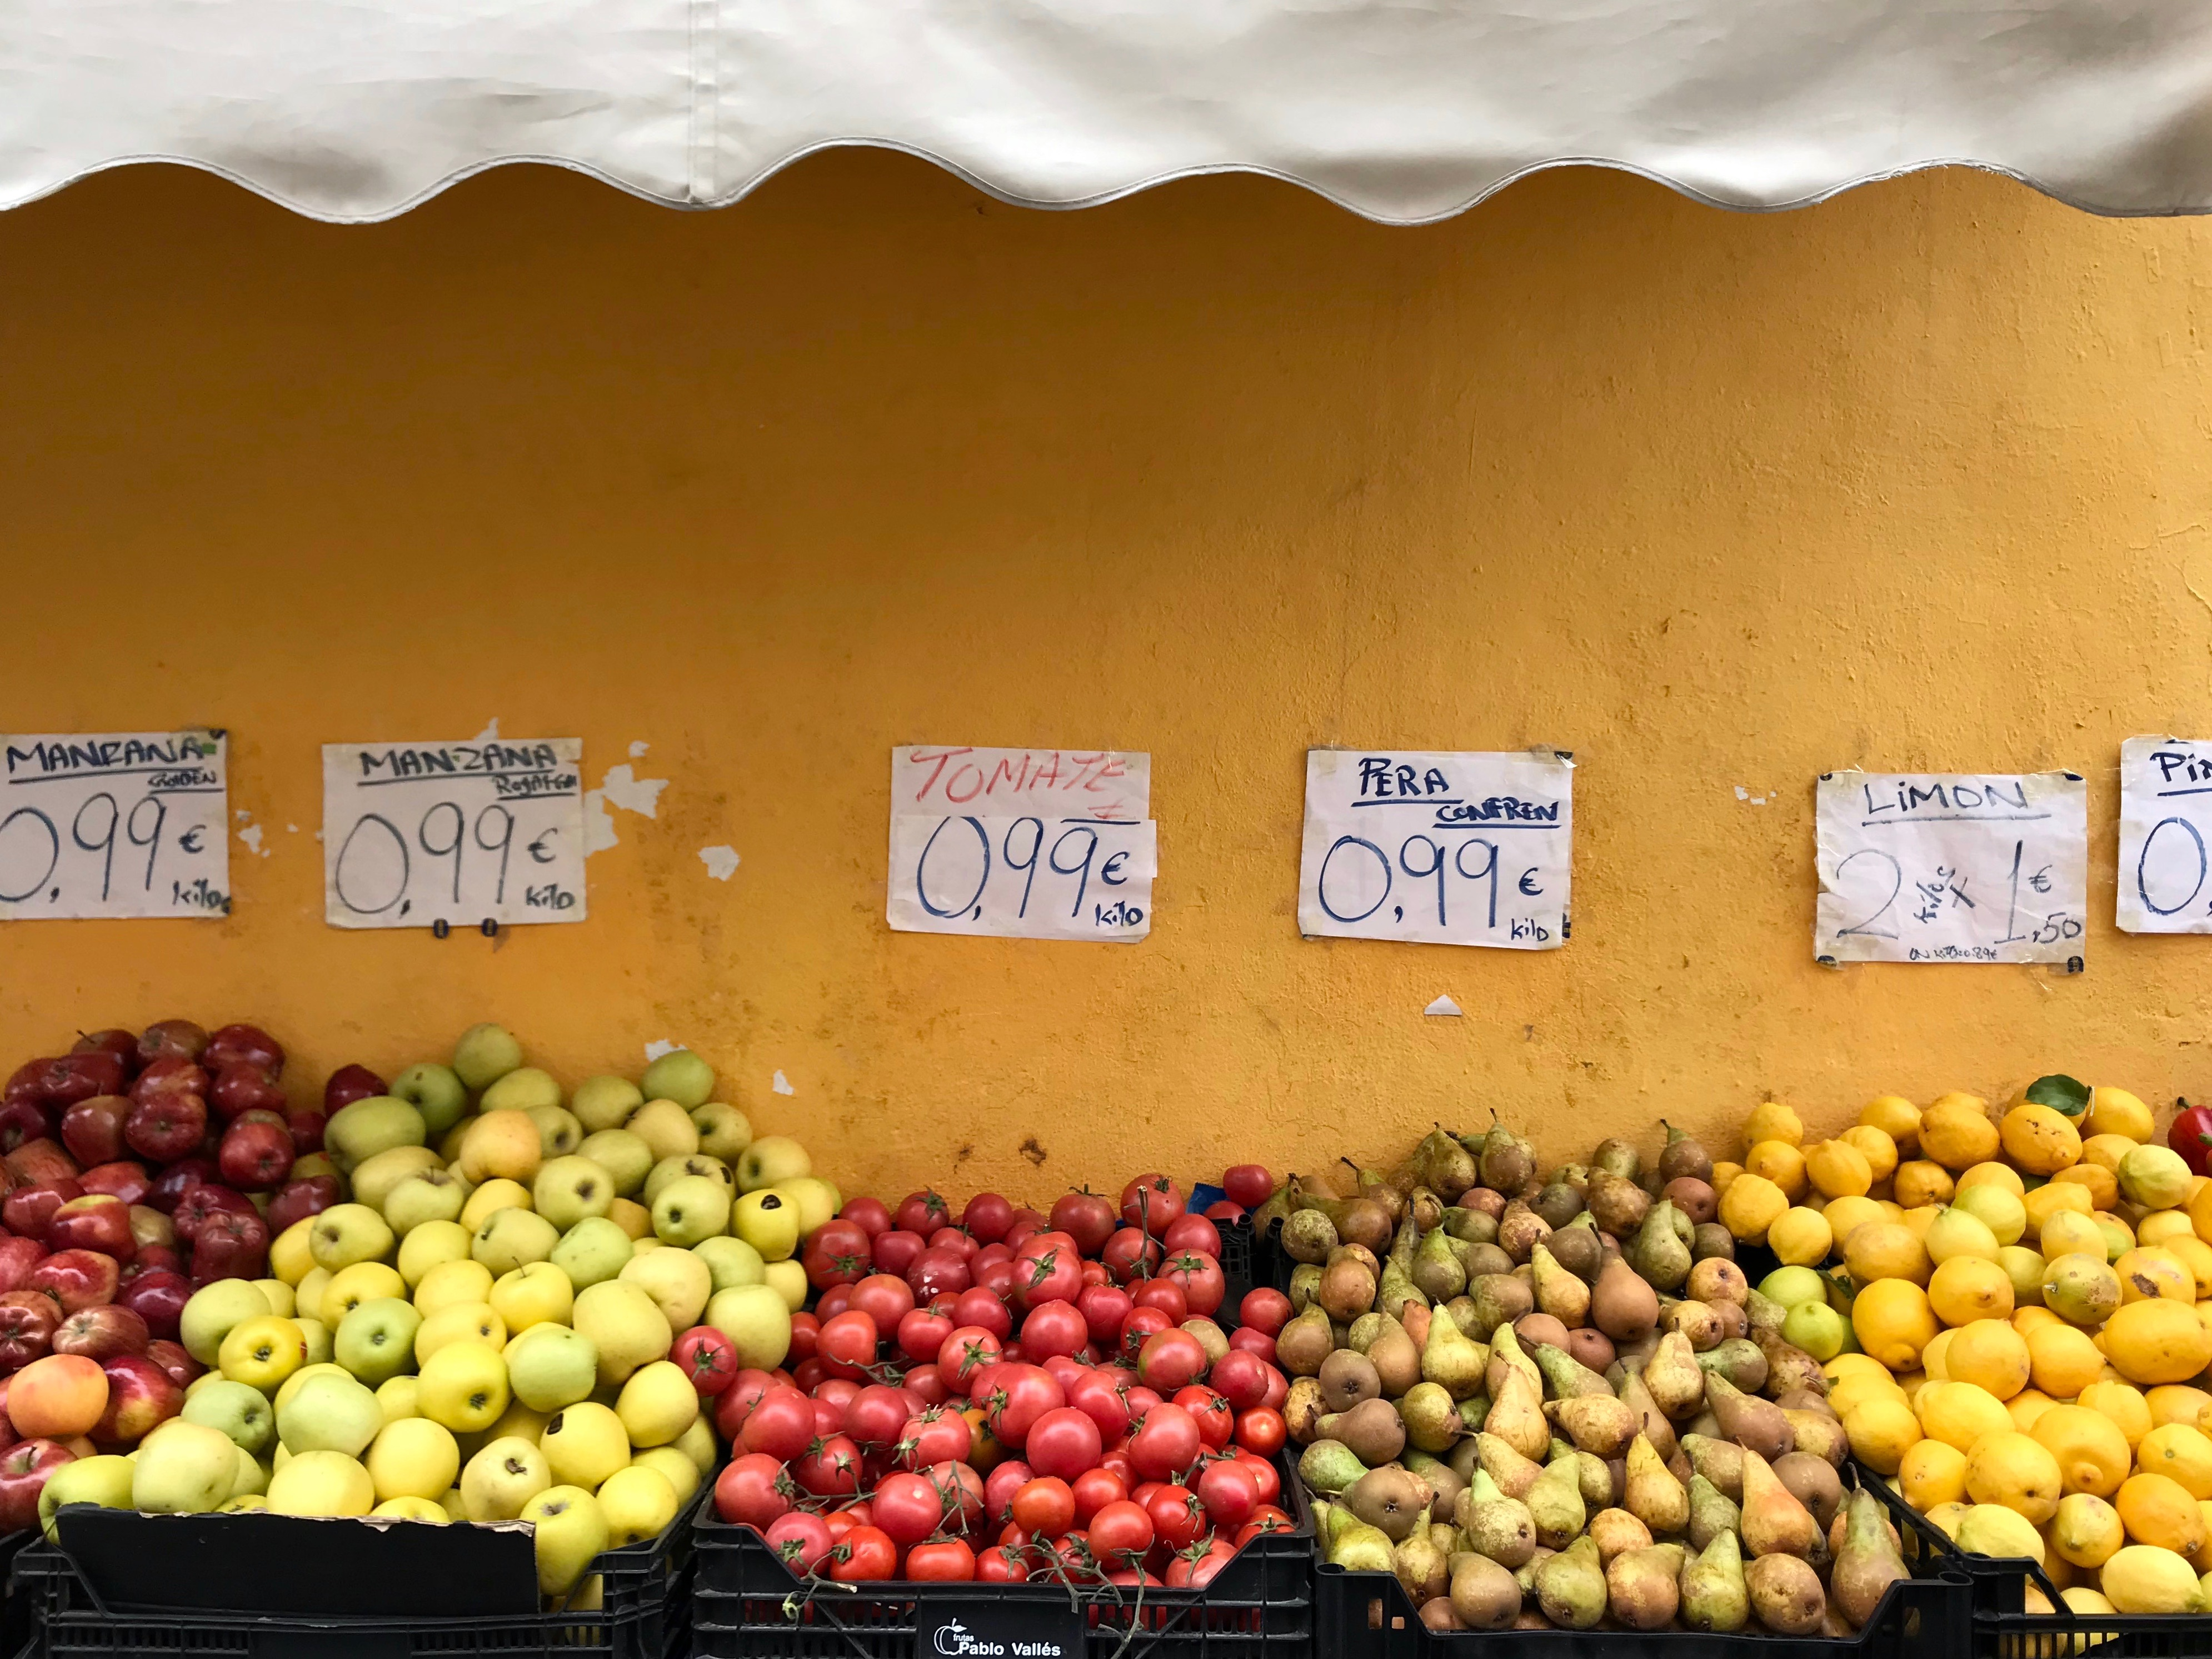 Fruit and vegetables at street stall